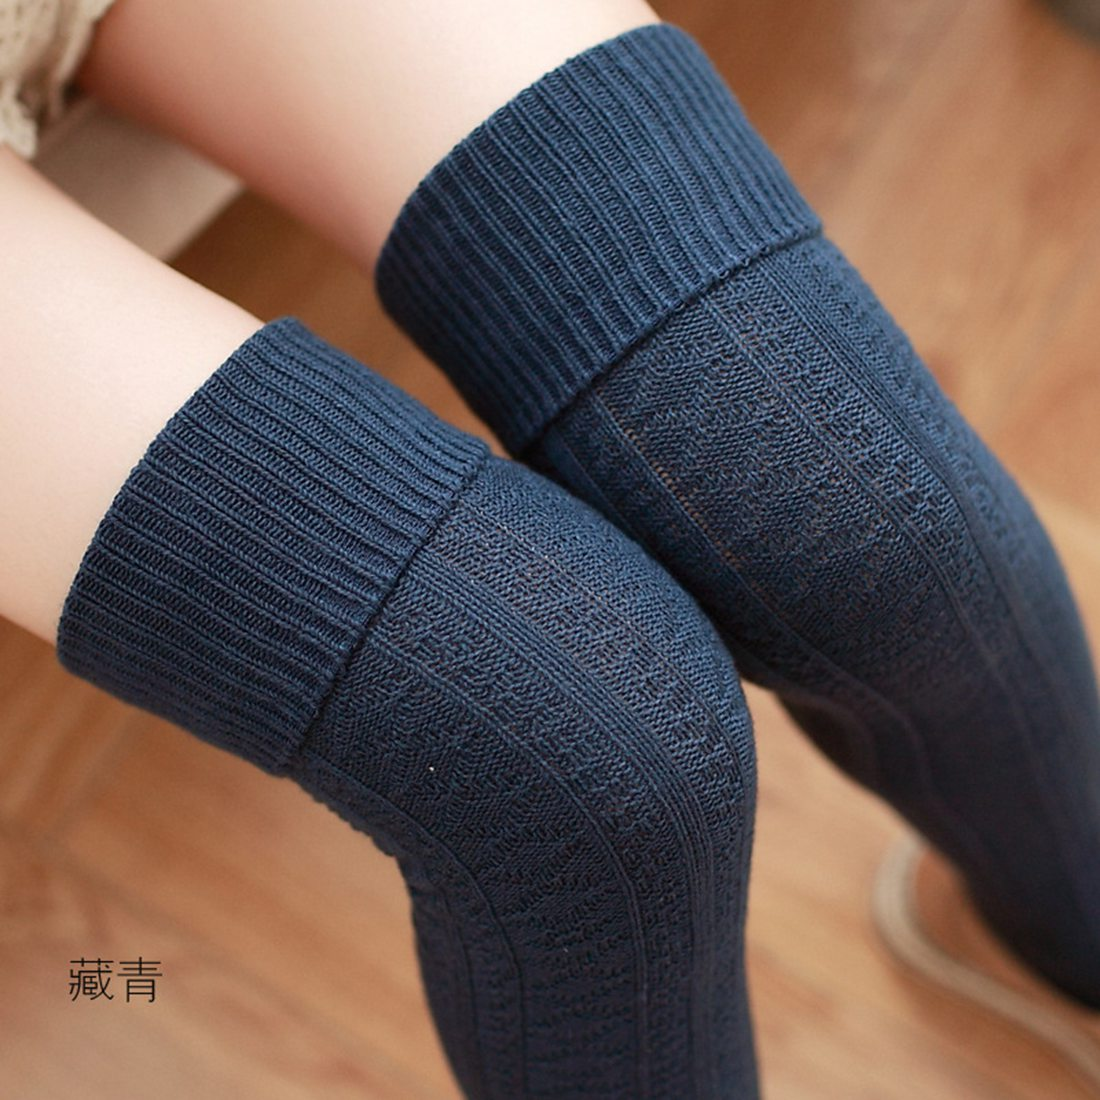 Stockings Women Knee Socks Cotton Fitness Medias Sexy Stockings Female Warm Knit Long Socks Thigh High Socks Knee High Stocking